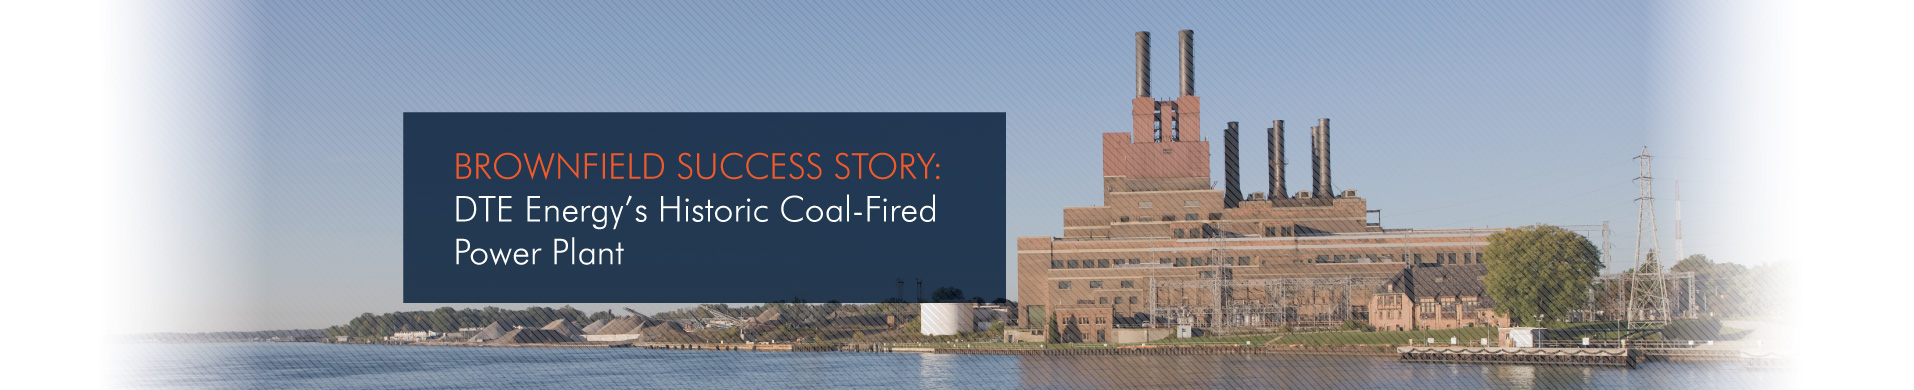 DTE-Energy-Coal-Power-Plant-Brownfield-Success-Story